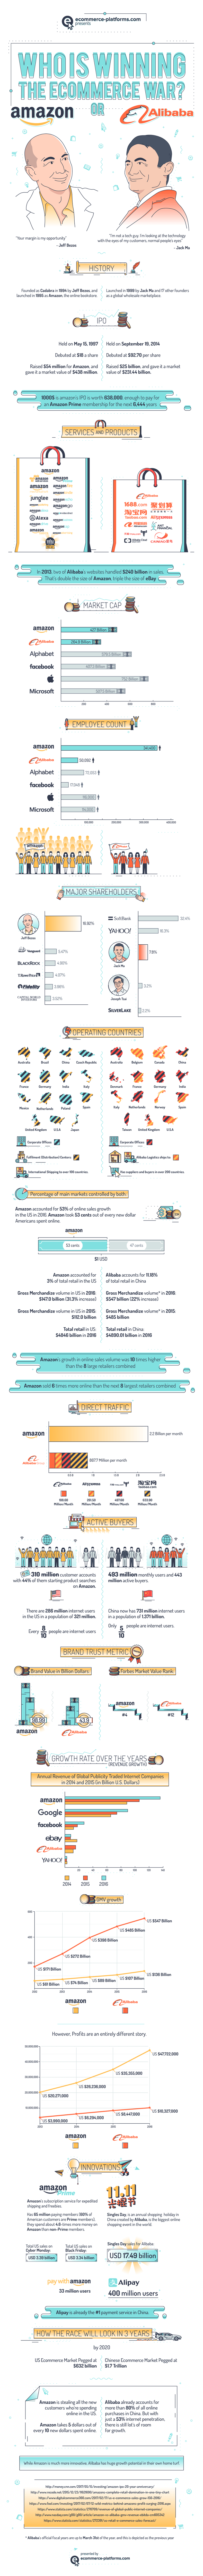 Amazon-or-alibaba-ecommerce-war-infographic.png